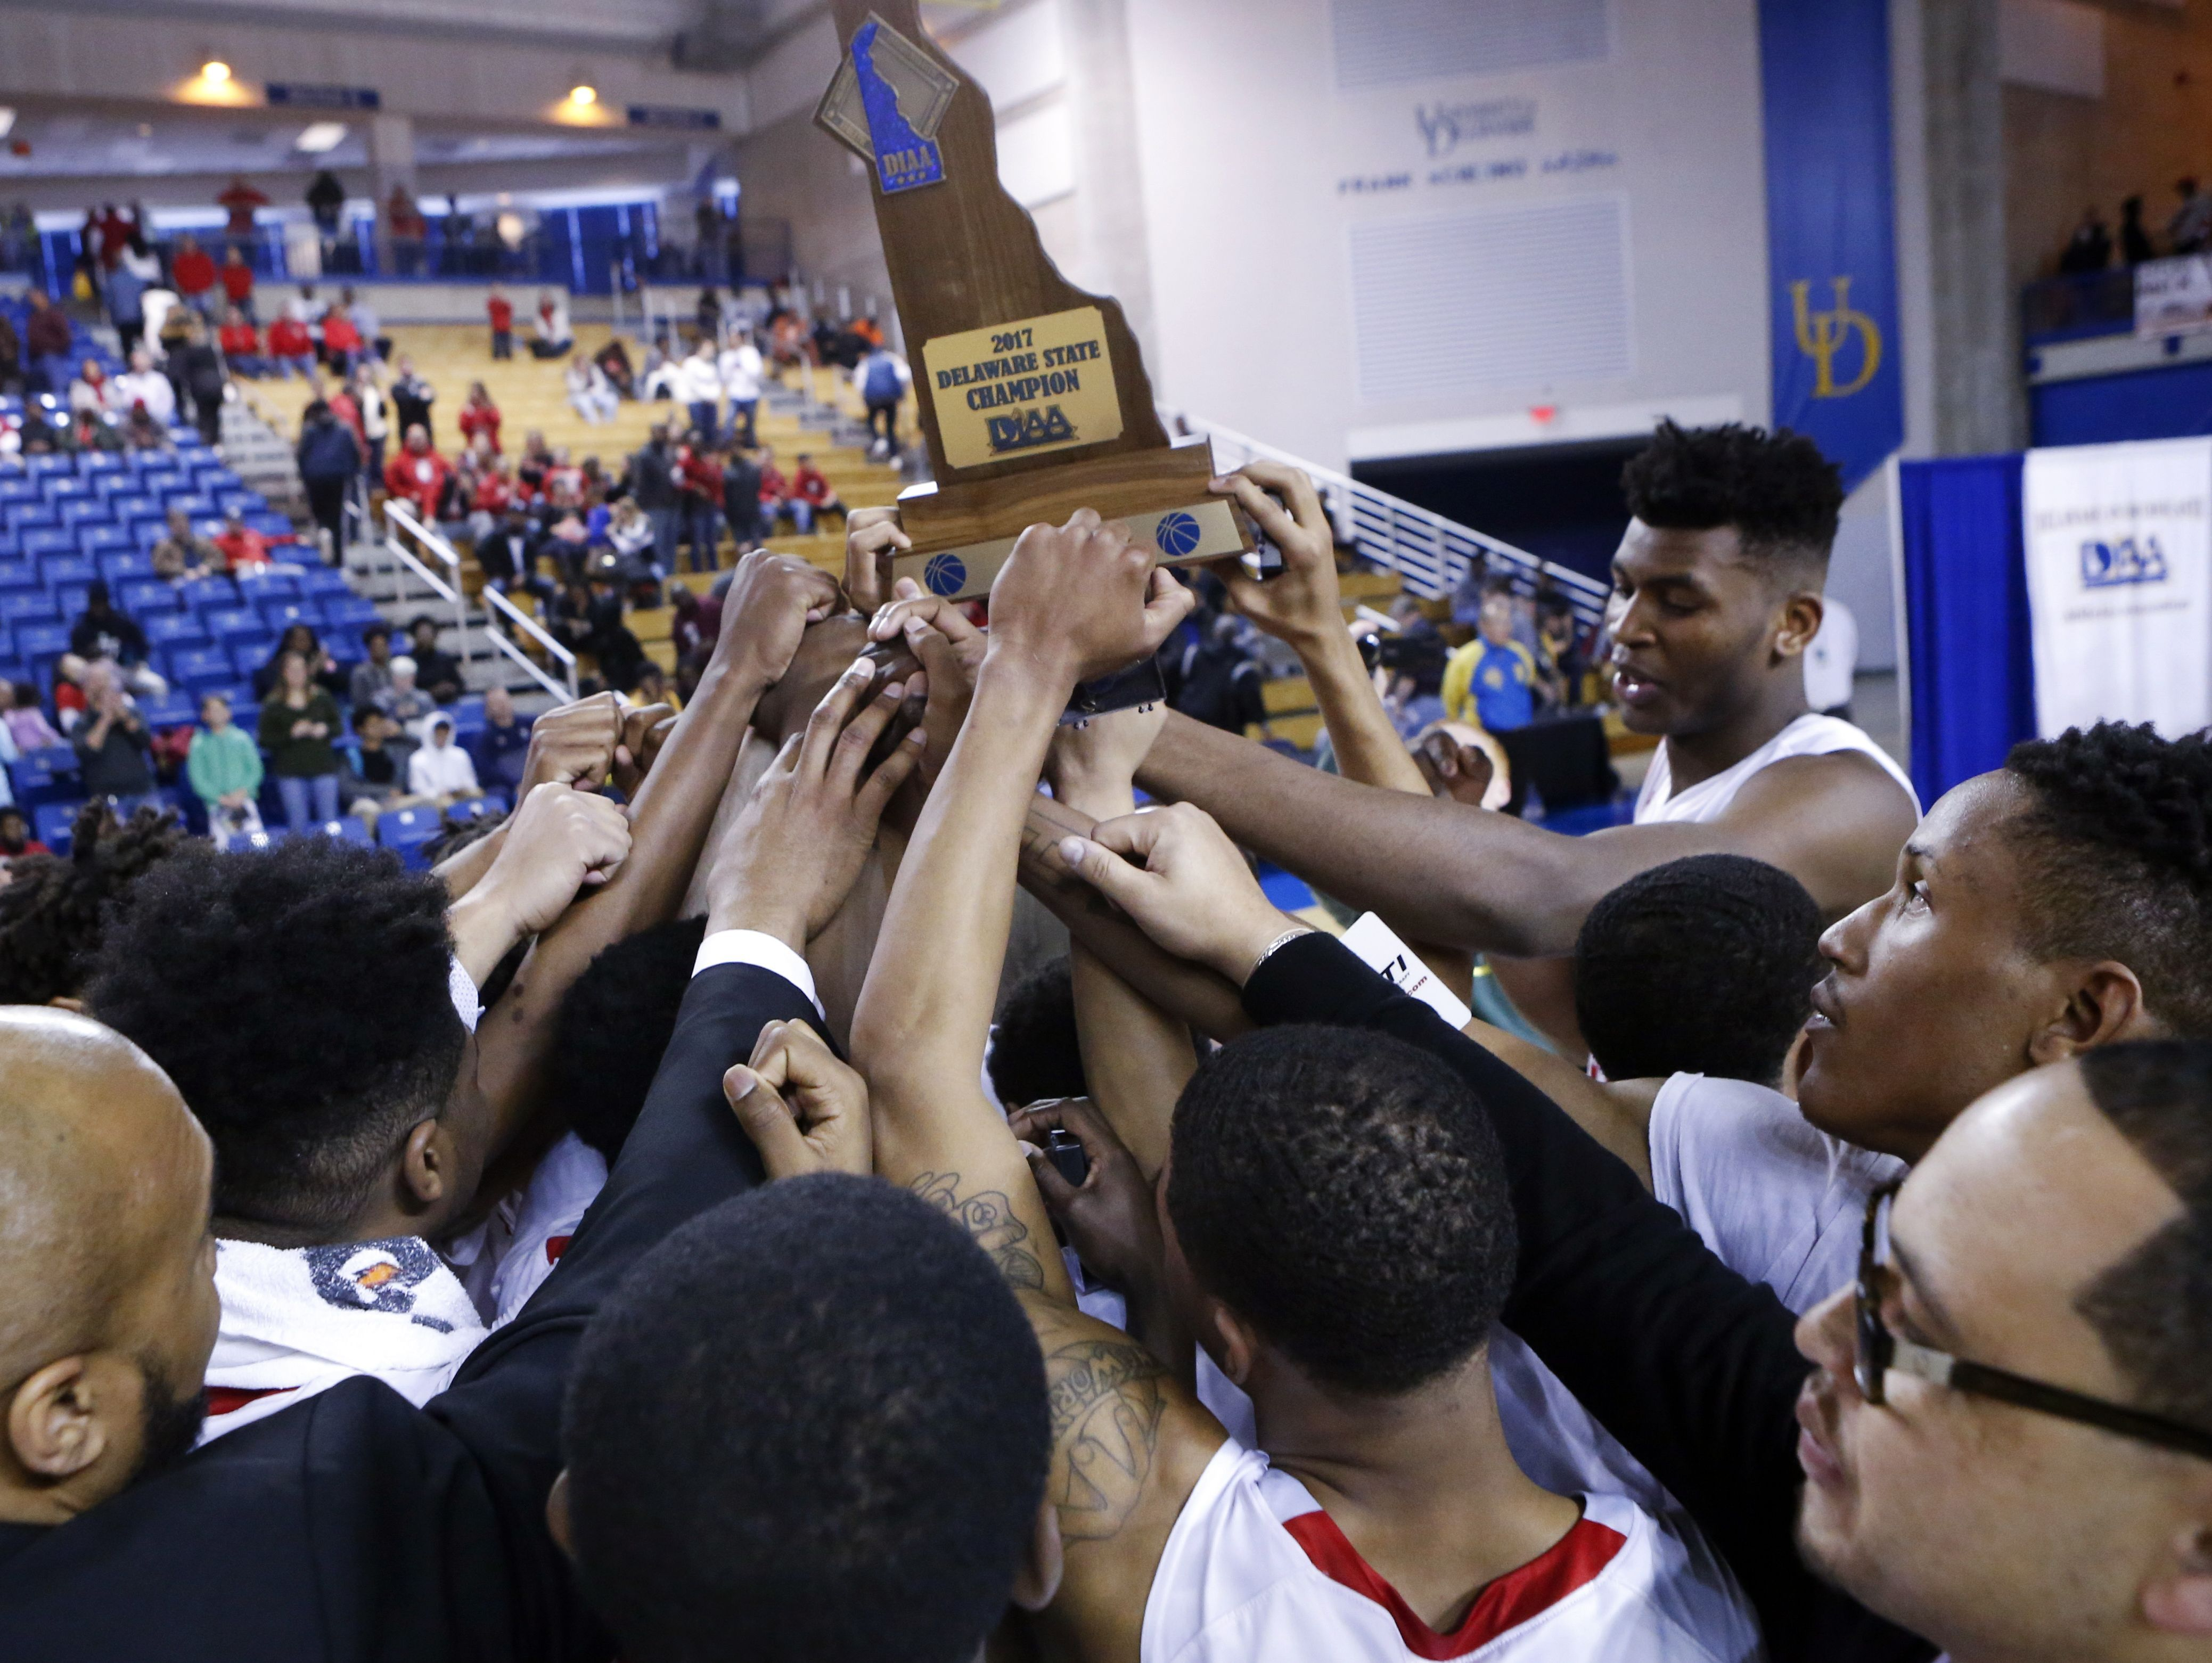 Smyrna celebrates its championship after the Eagles' 61-53 win against Caravel in the DIAA state tournament title game at the Bob Carpenter Center Saturday.